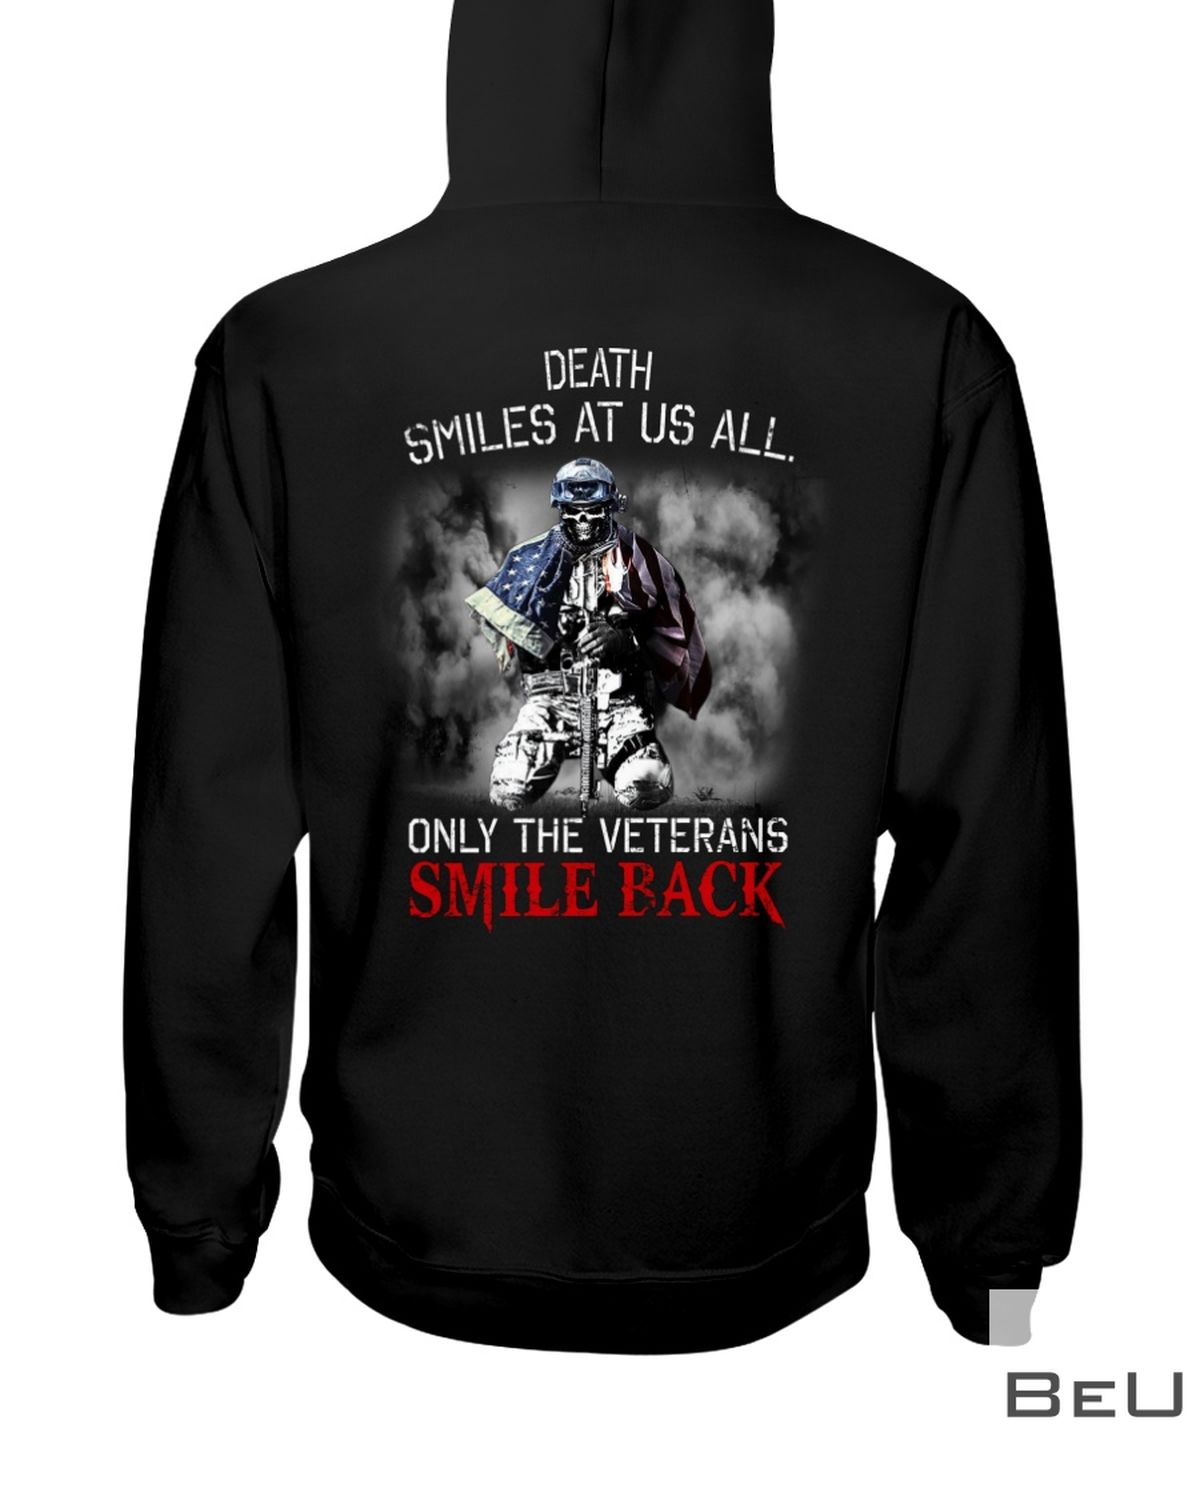 Death Smiles At Us All Only The Veterans Smile Back Shirtz